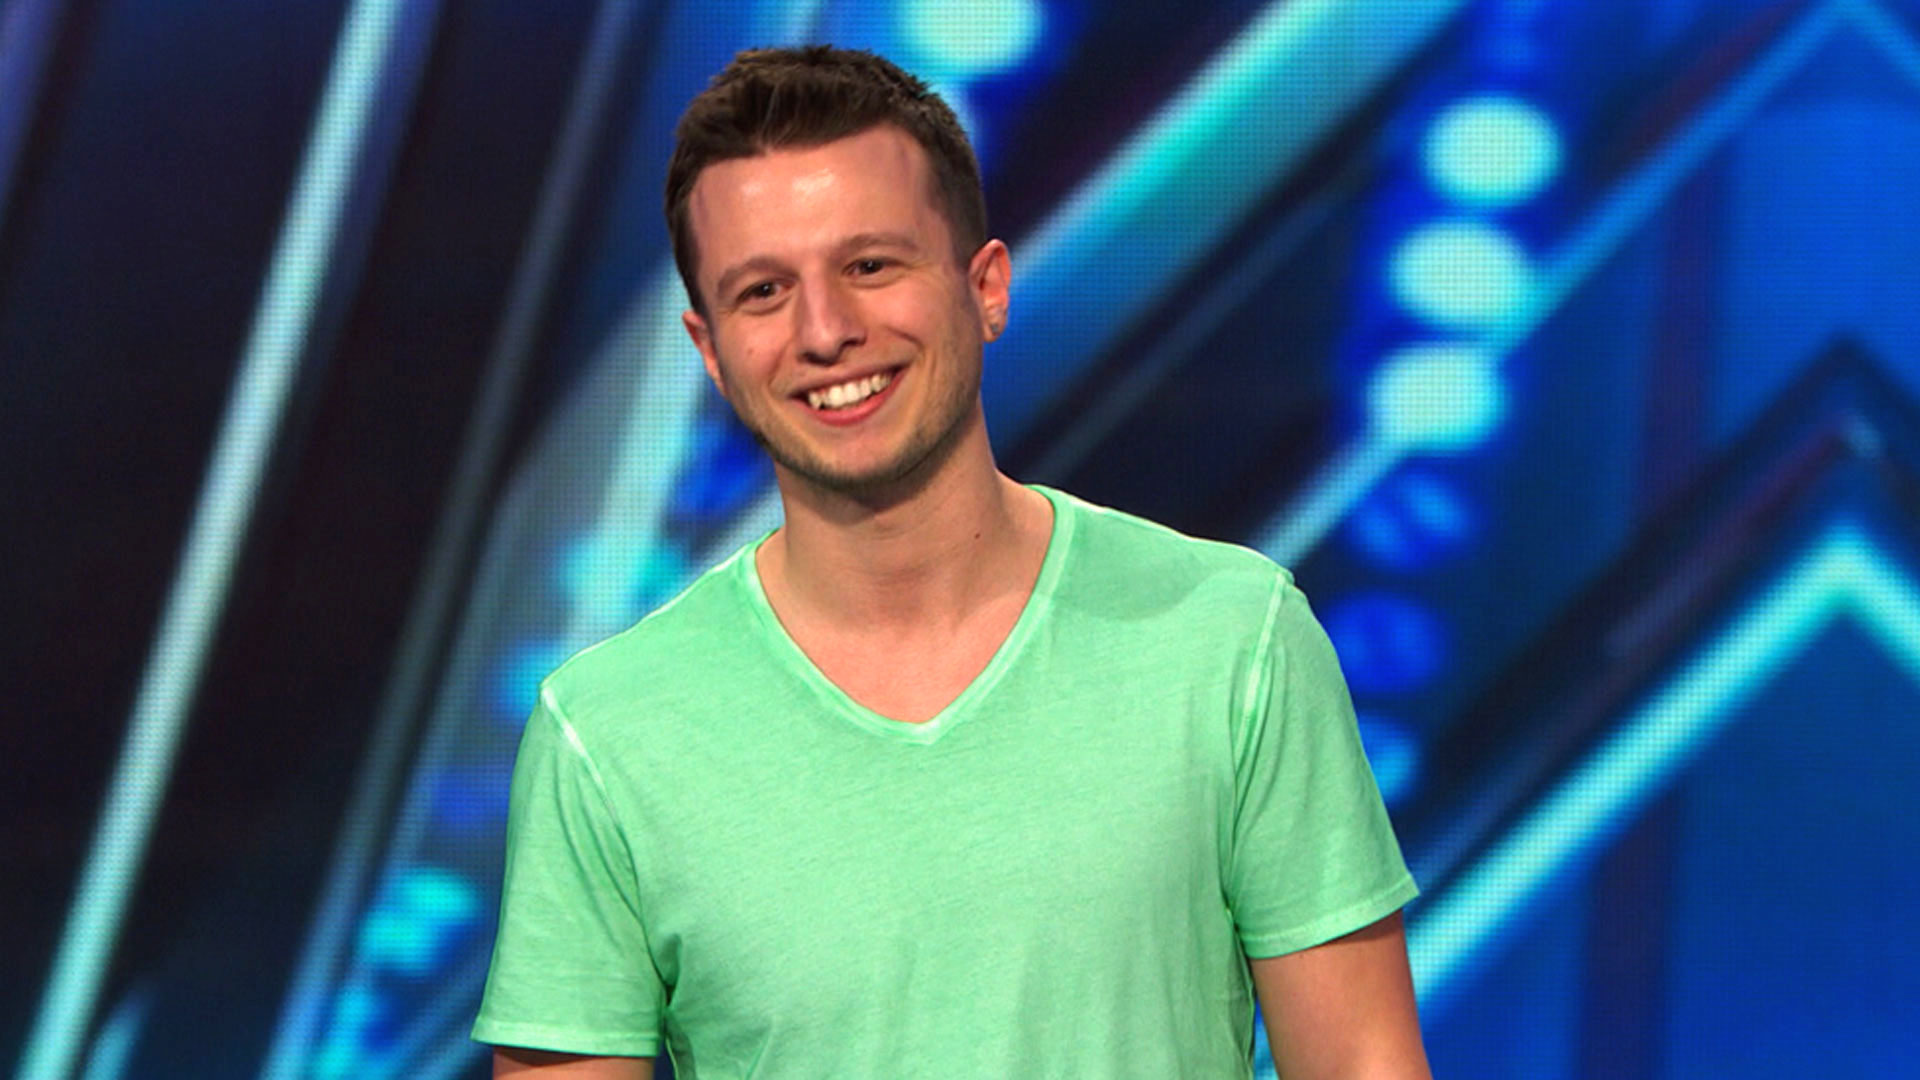 Mat Franco on the stage of America's Got Talent